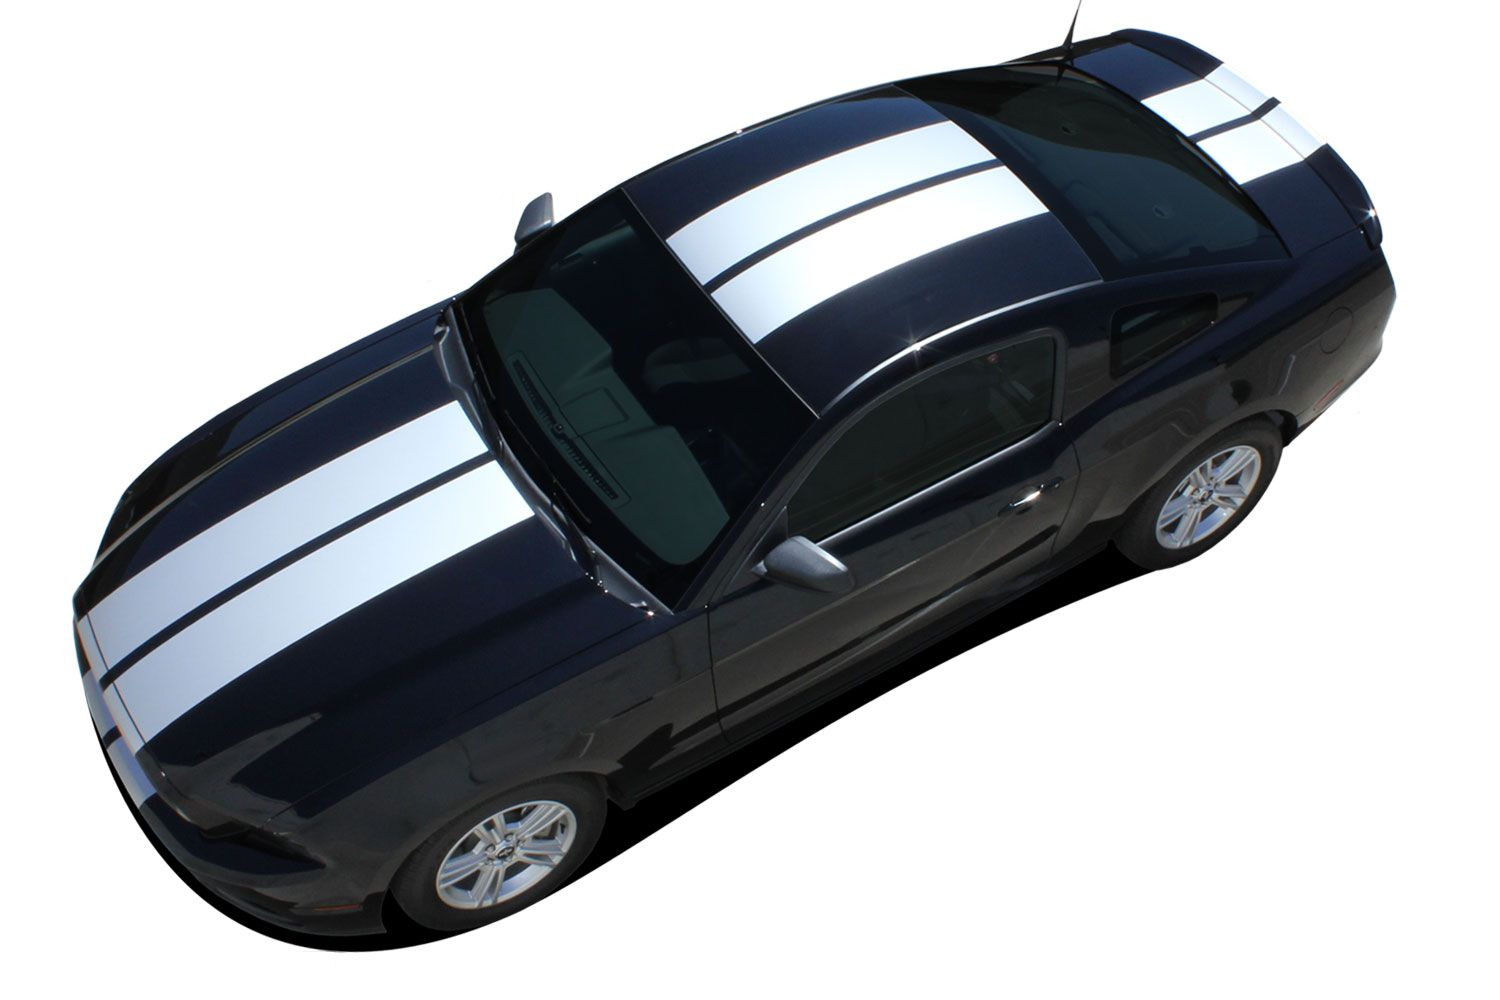 2013 2014 ford mustang thunder racing and rally stripes vinyl decal graphics